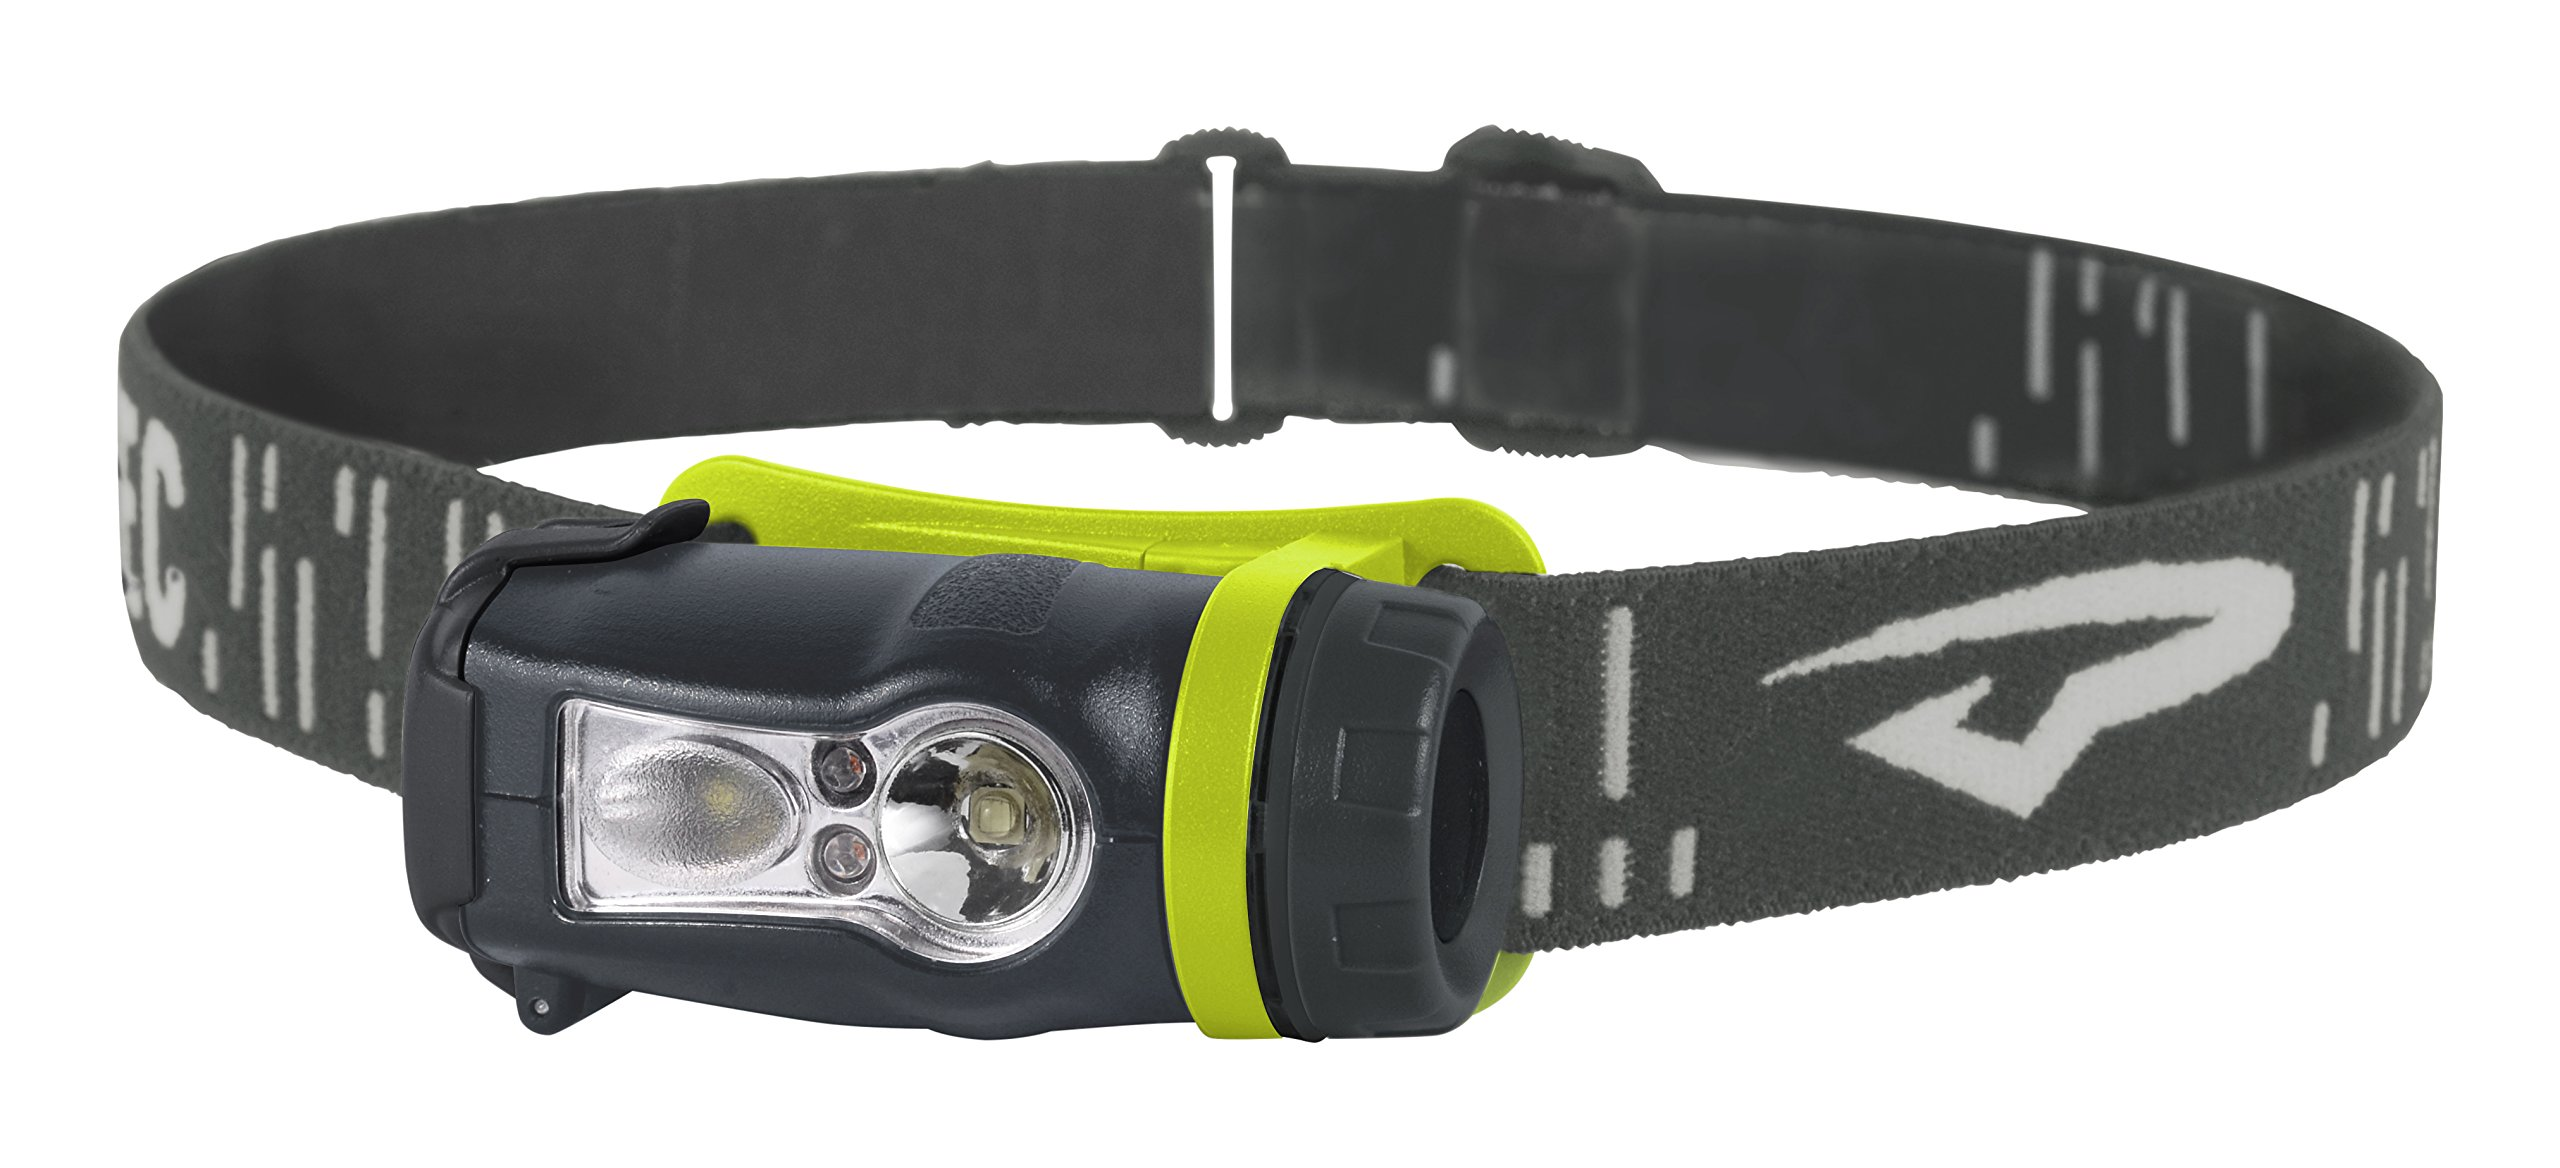 Princeton Tec Axis Rechargeable Headlamp (250 Lumens, Green/Gray) by Princeton Tec